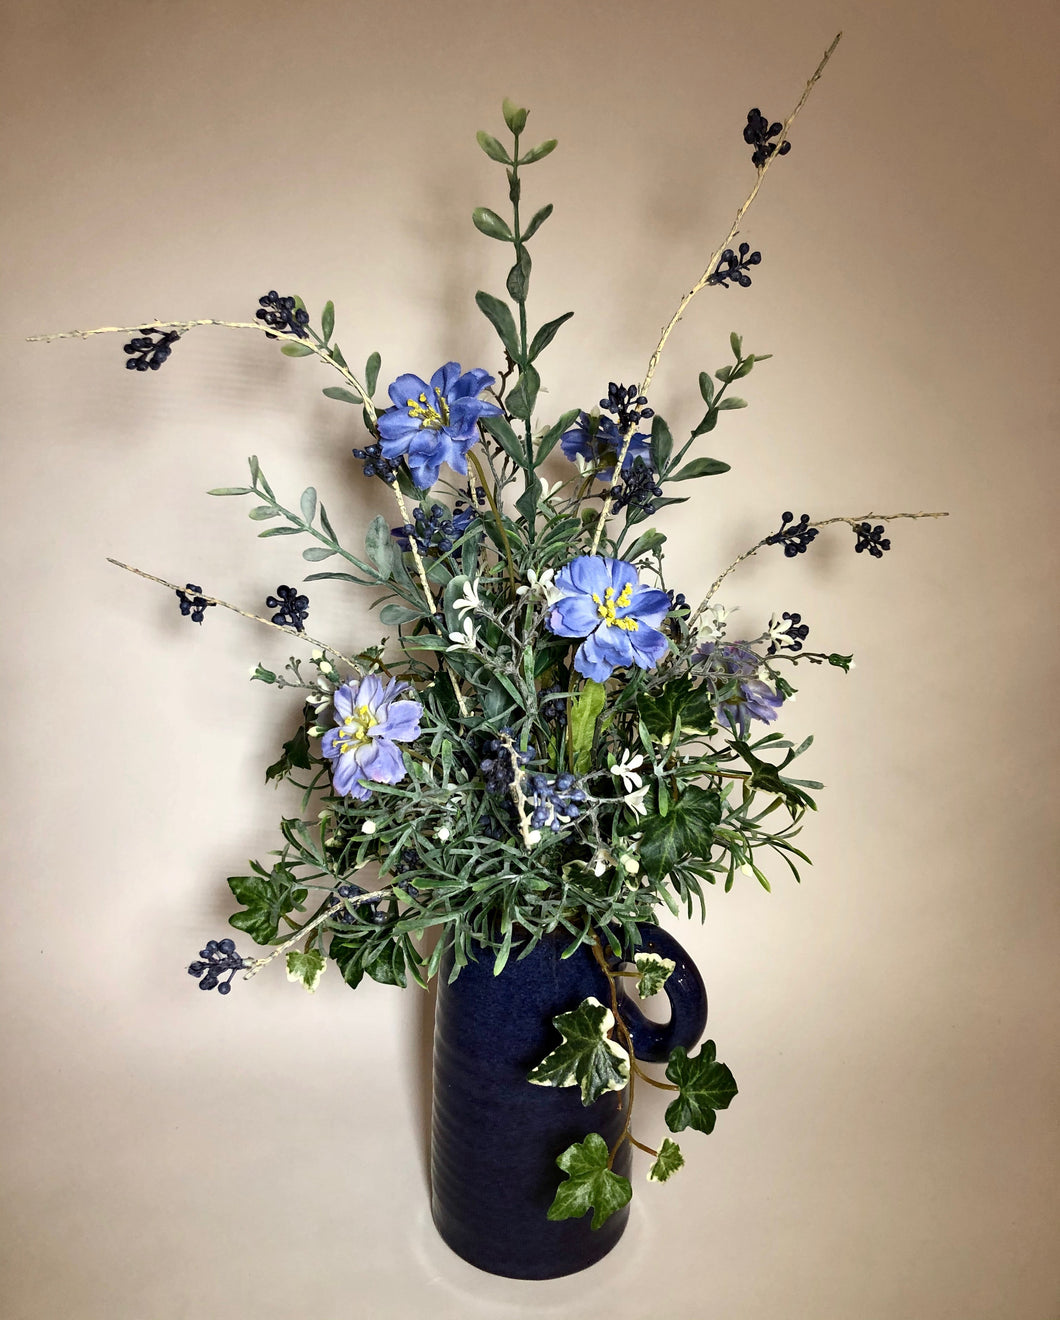 Blue Pitcher with Cosmos